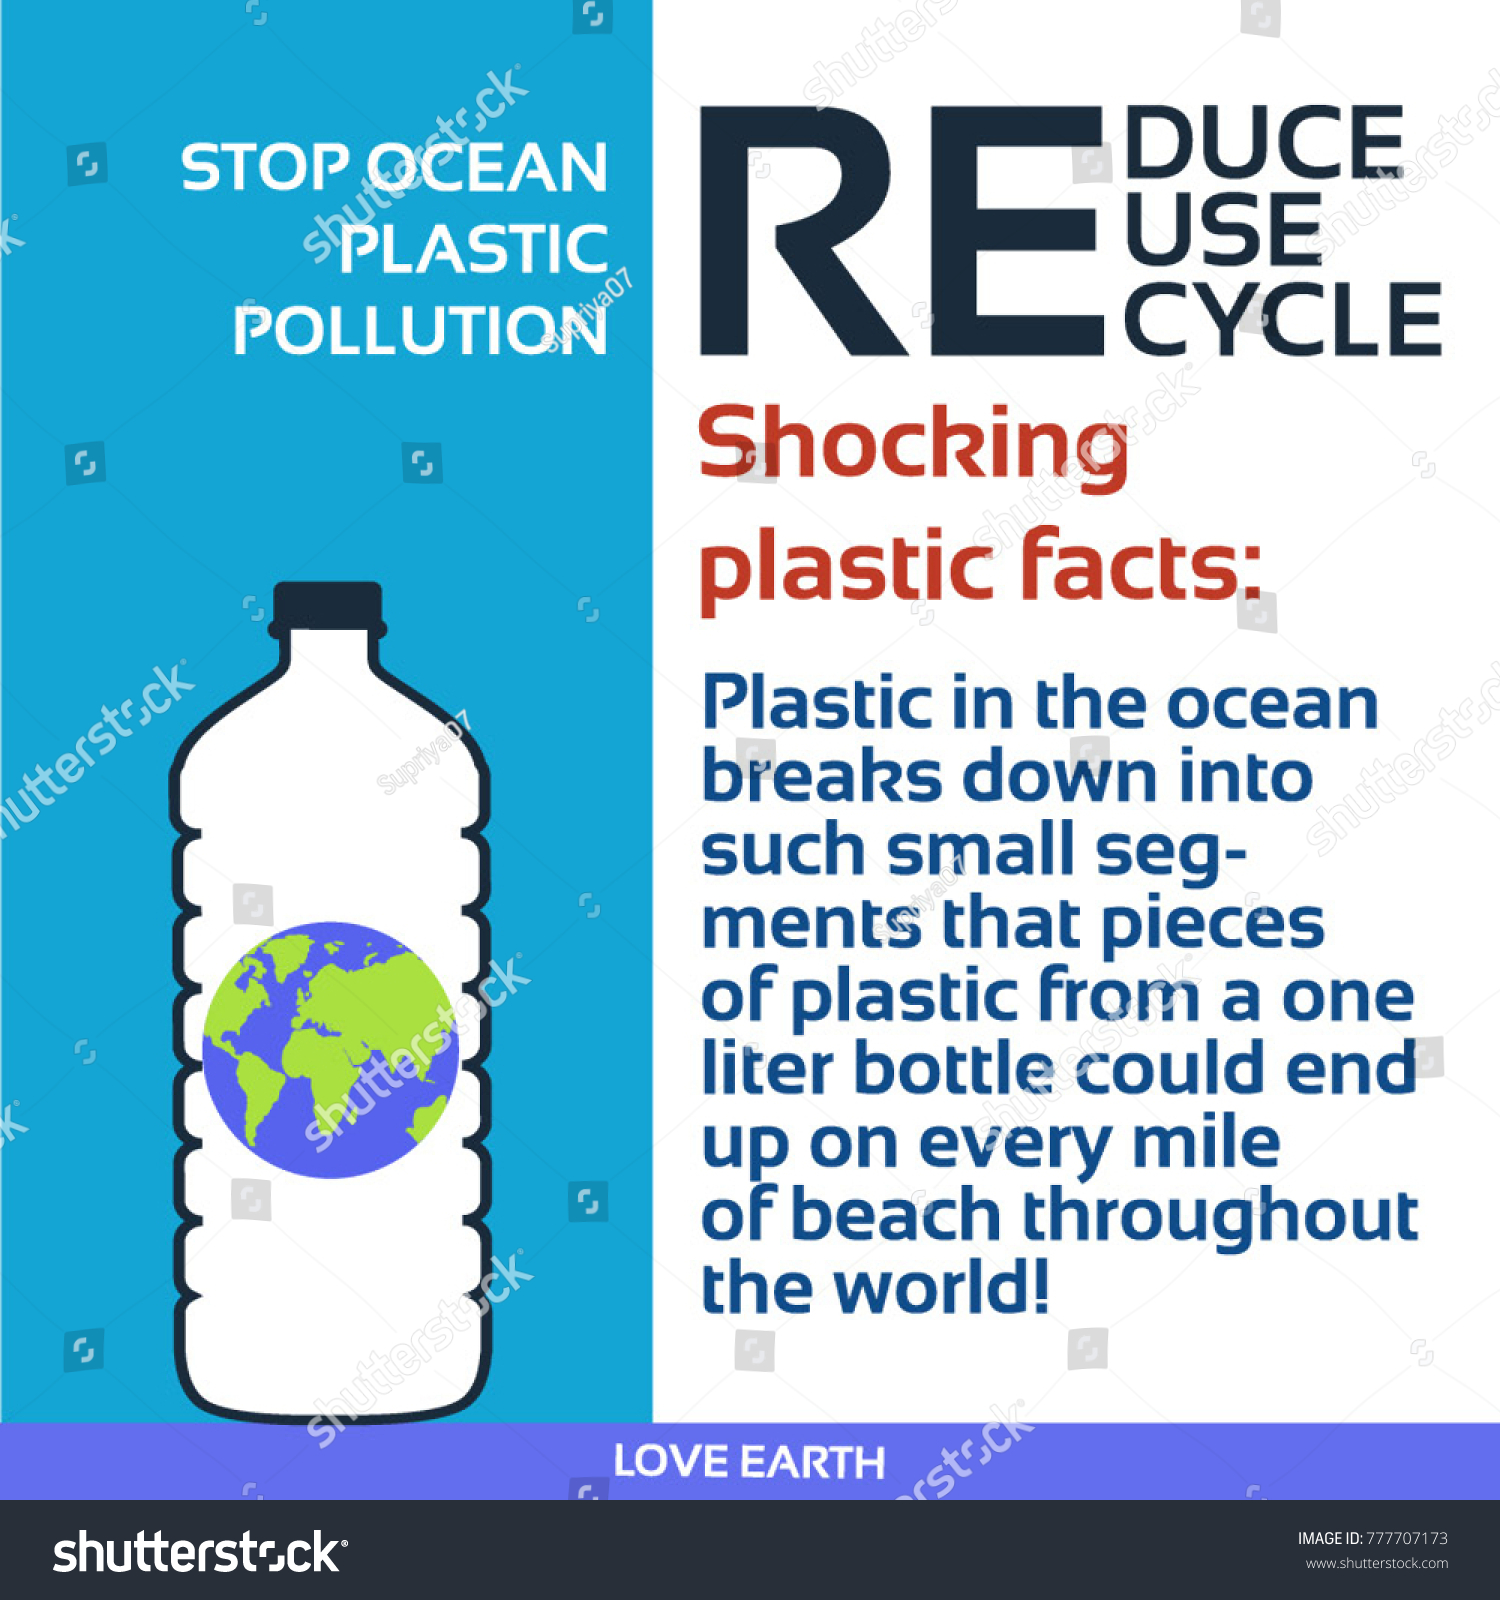 Forum on this topic: Reduce Reuse Recycle: Your Plastic Water Bottles, reduce-reuse-recycle-your-plastic-water-bottles/